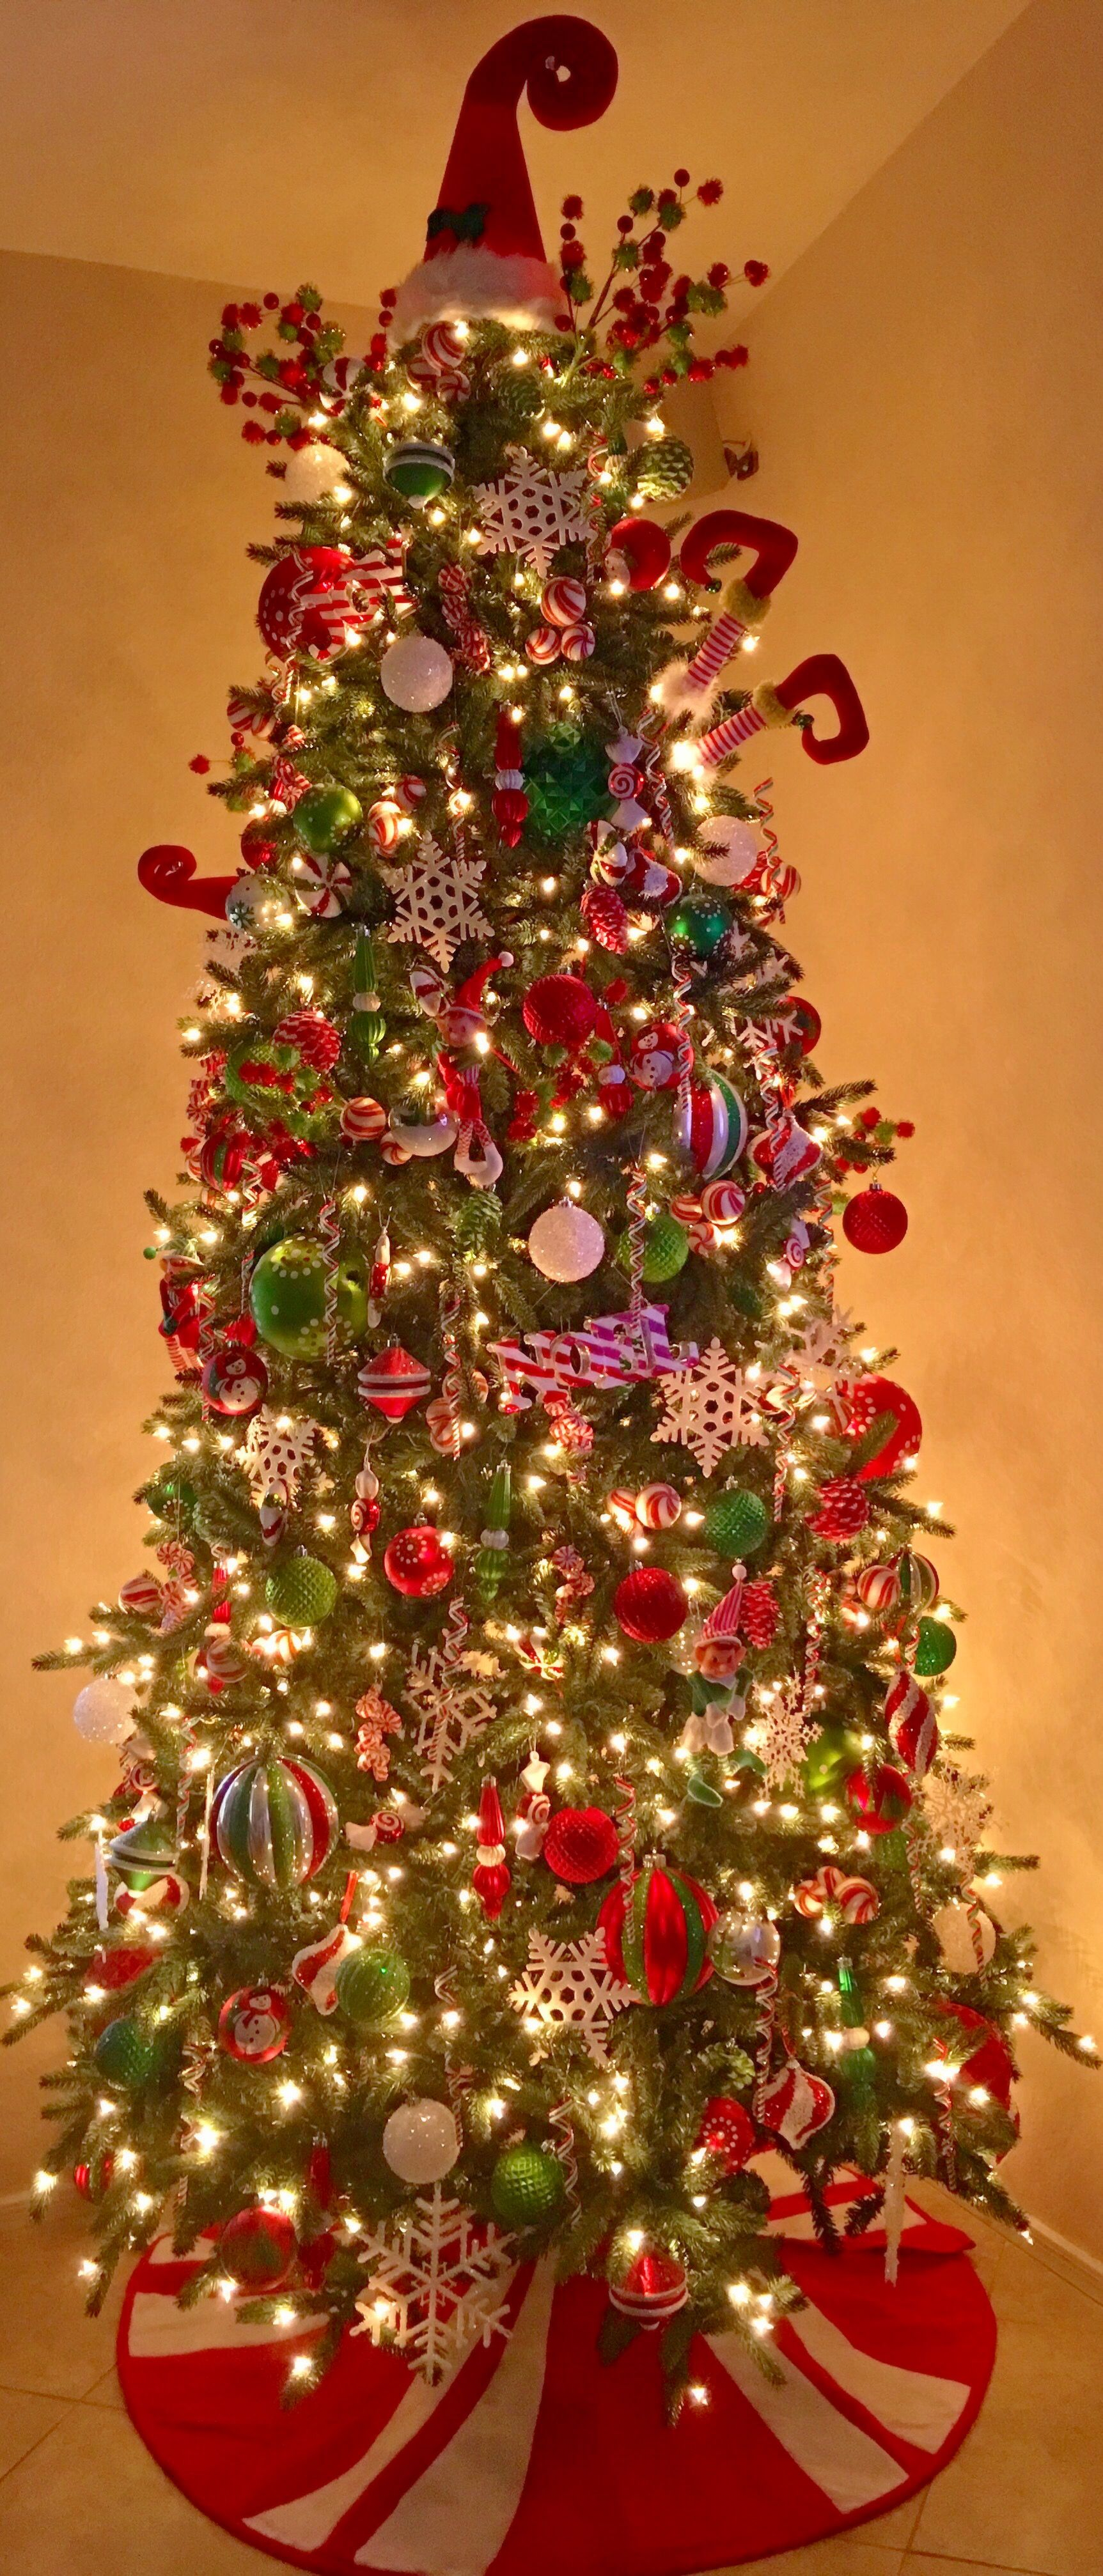 christmas tree 2016 whimsical tree sweet holiday pier one hobby lobby - Skinny Christmas Trees Hobby Lobby